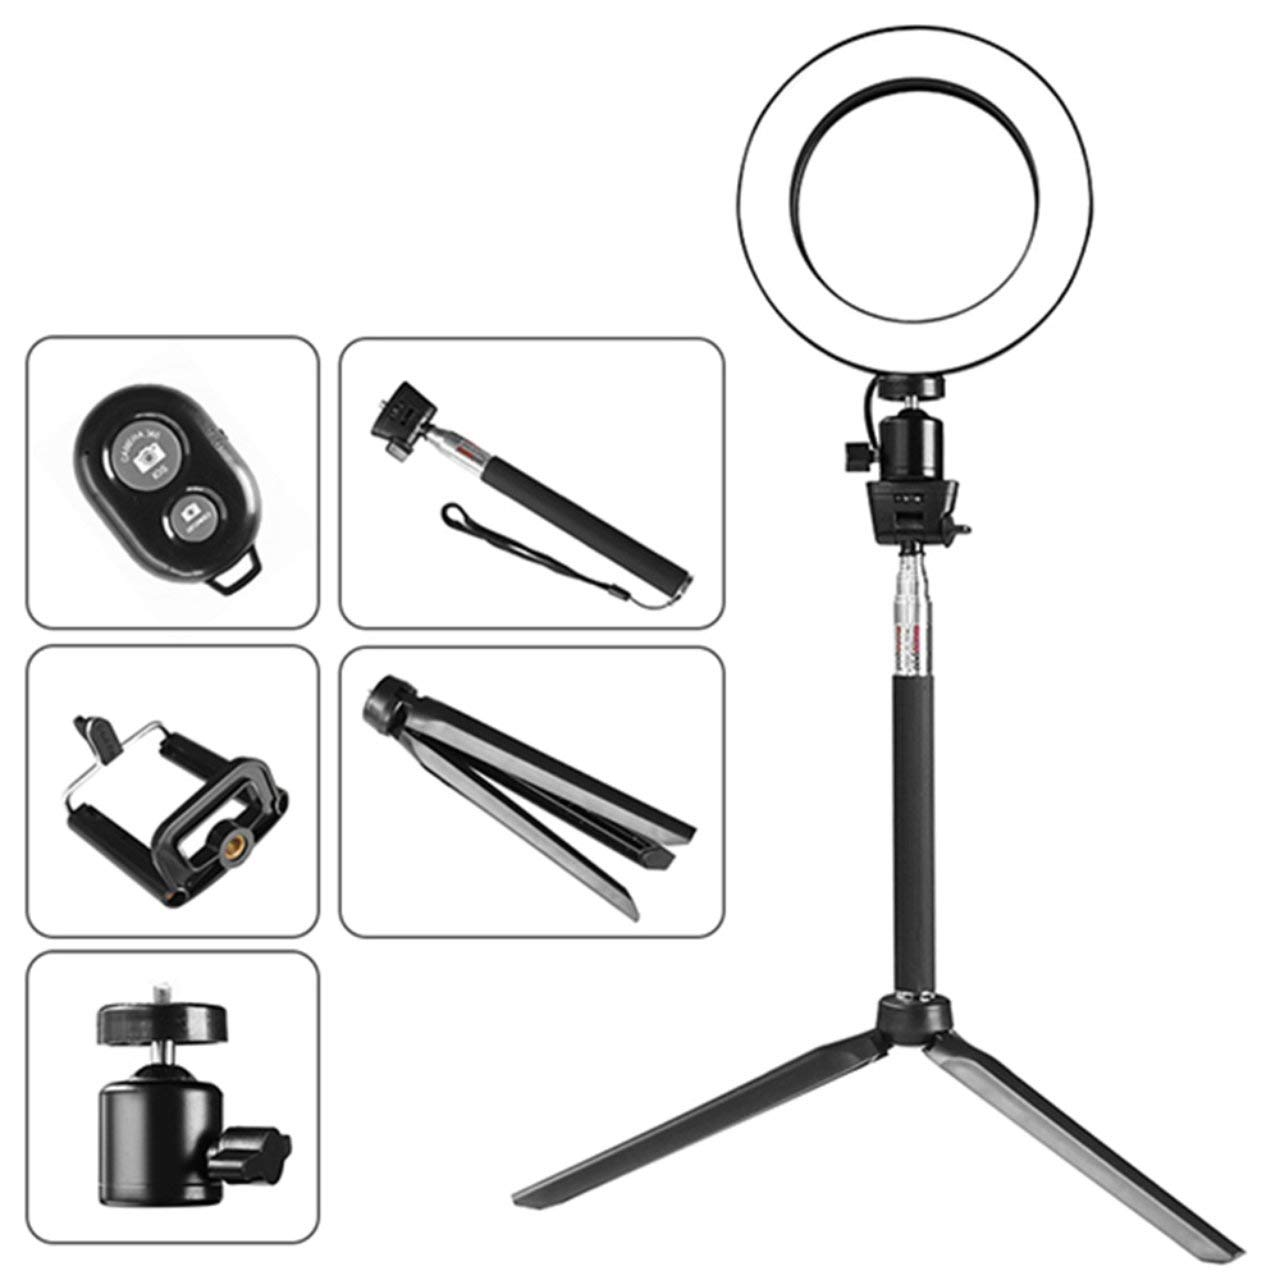 Selfie Lamp Photo LED Ring Light Dimmable Phone Video Lamp with Tripod Selfie Stick Ring Fill Light